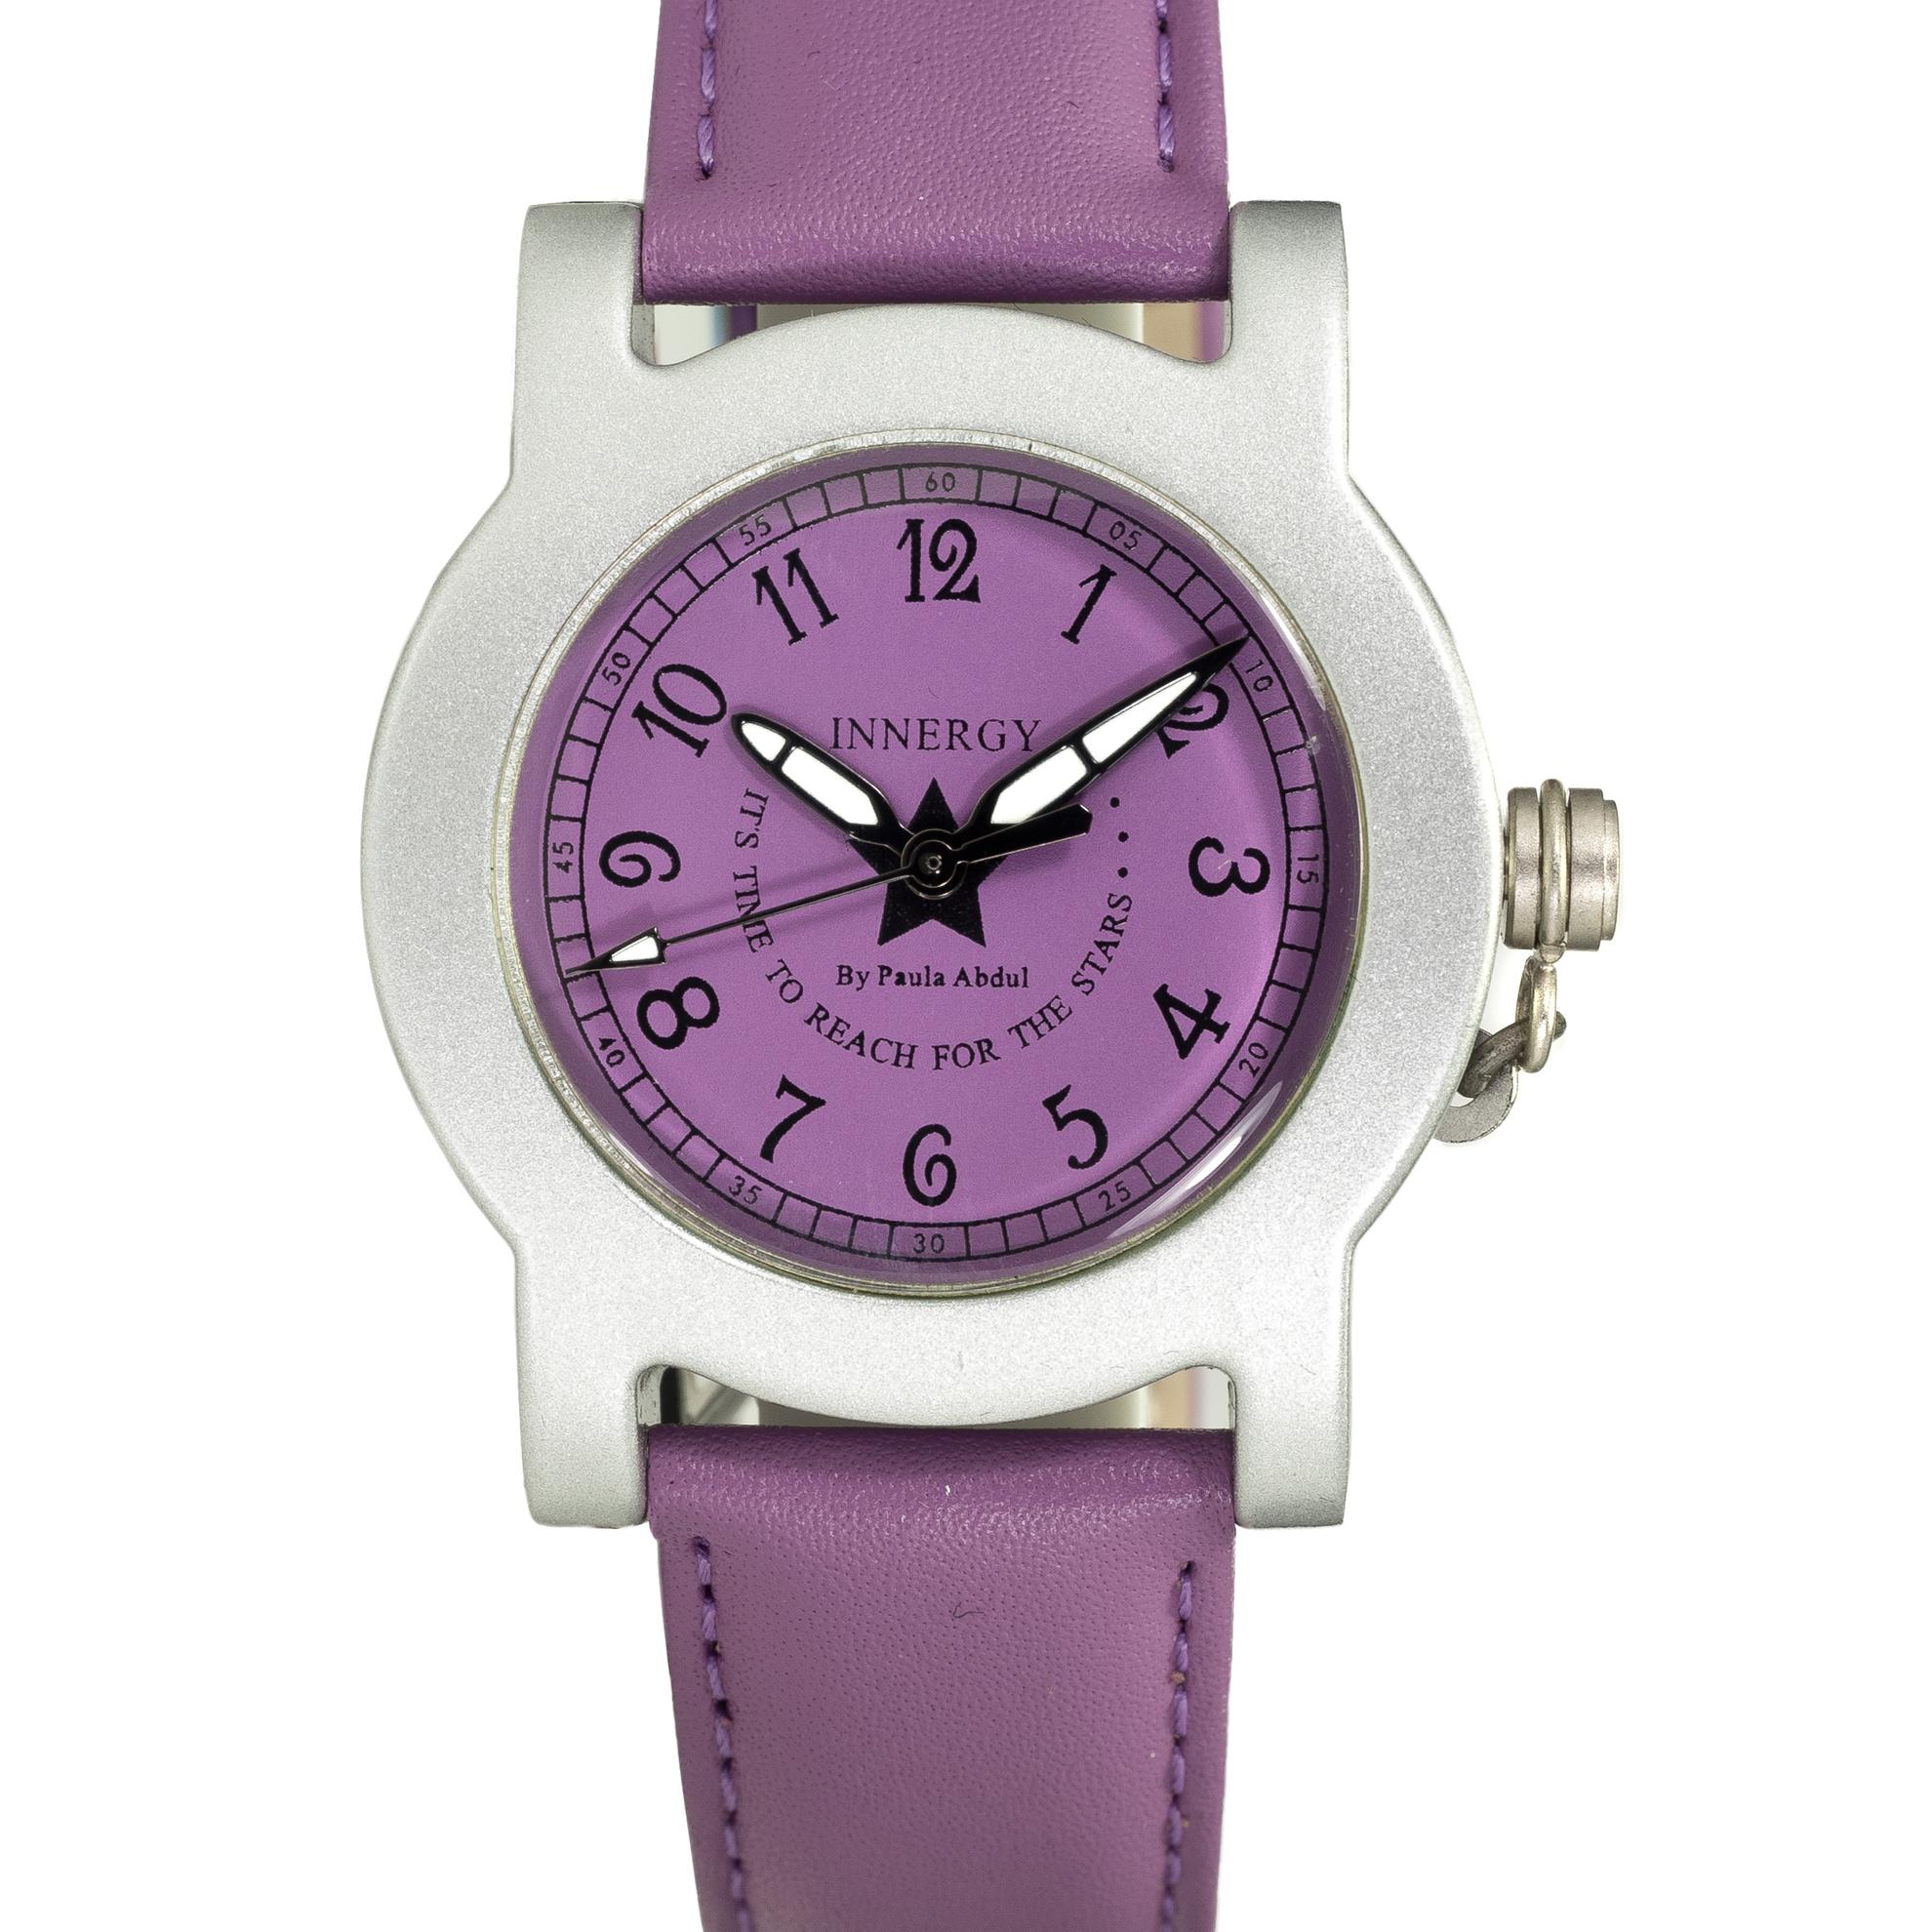 Innergy Swiss Made Timepiece Purple Leather Strap